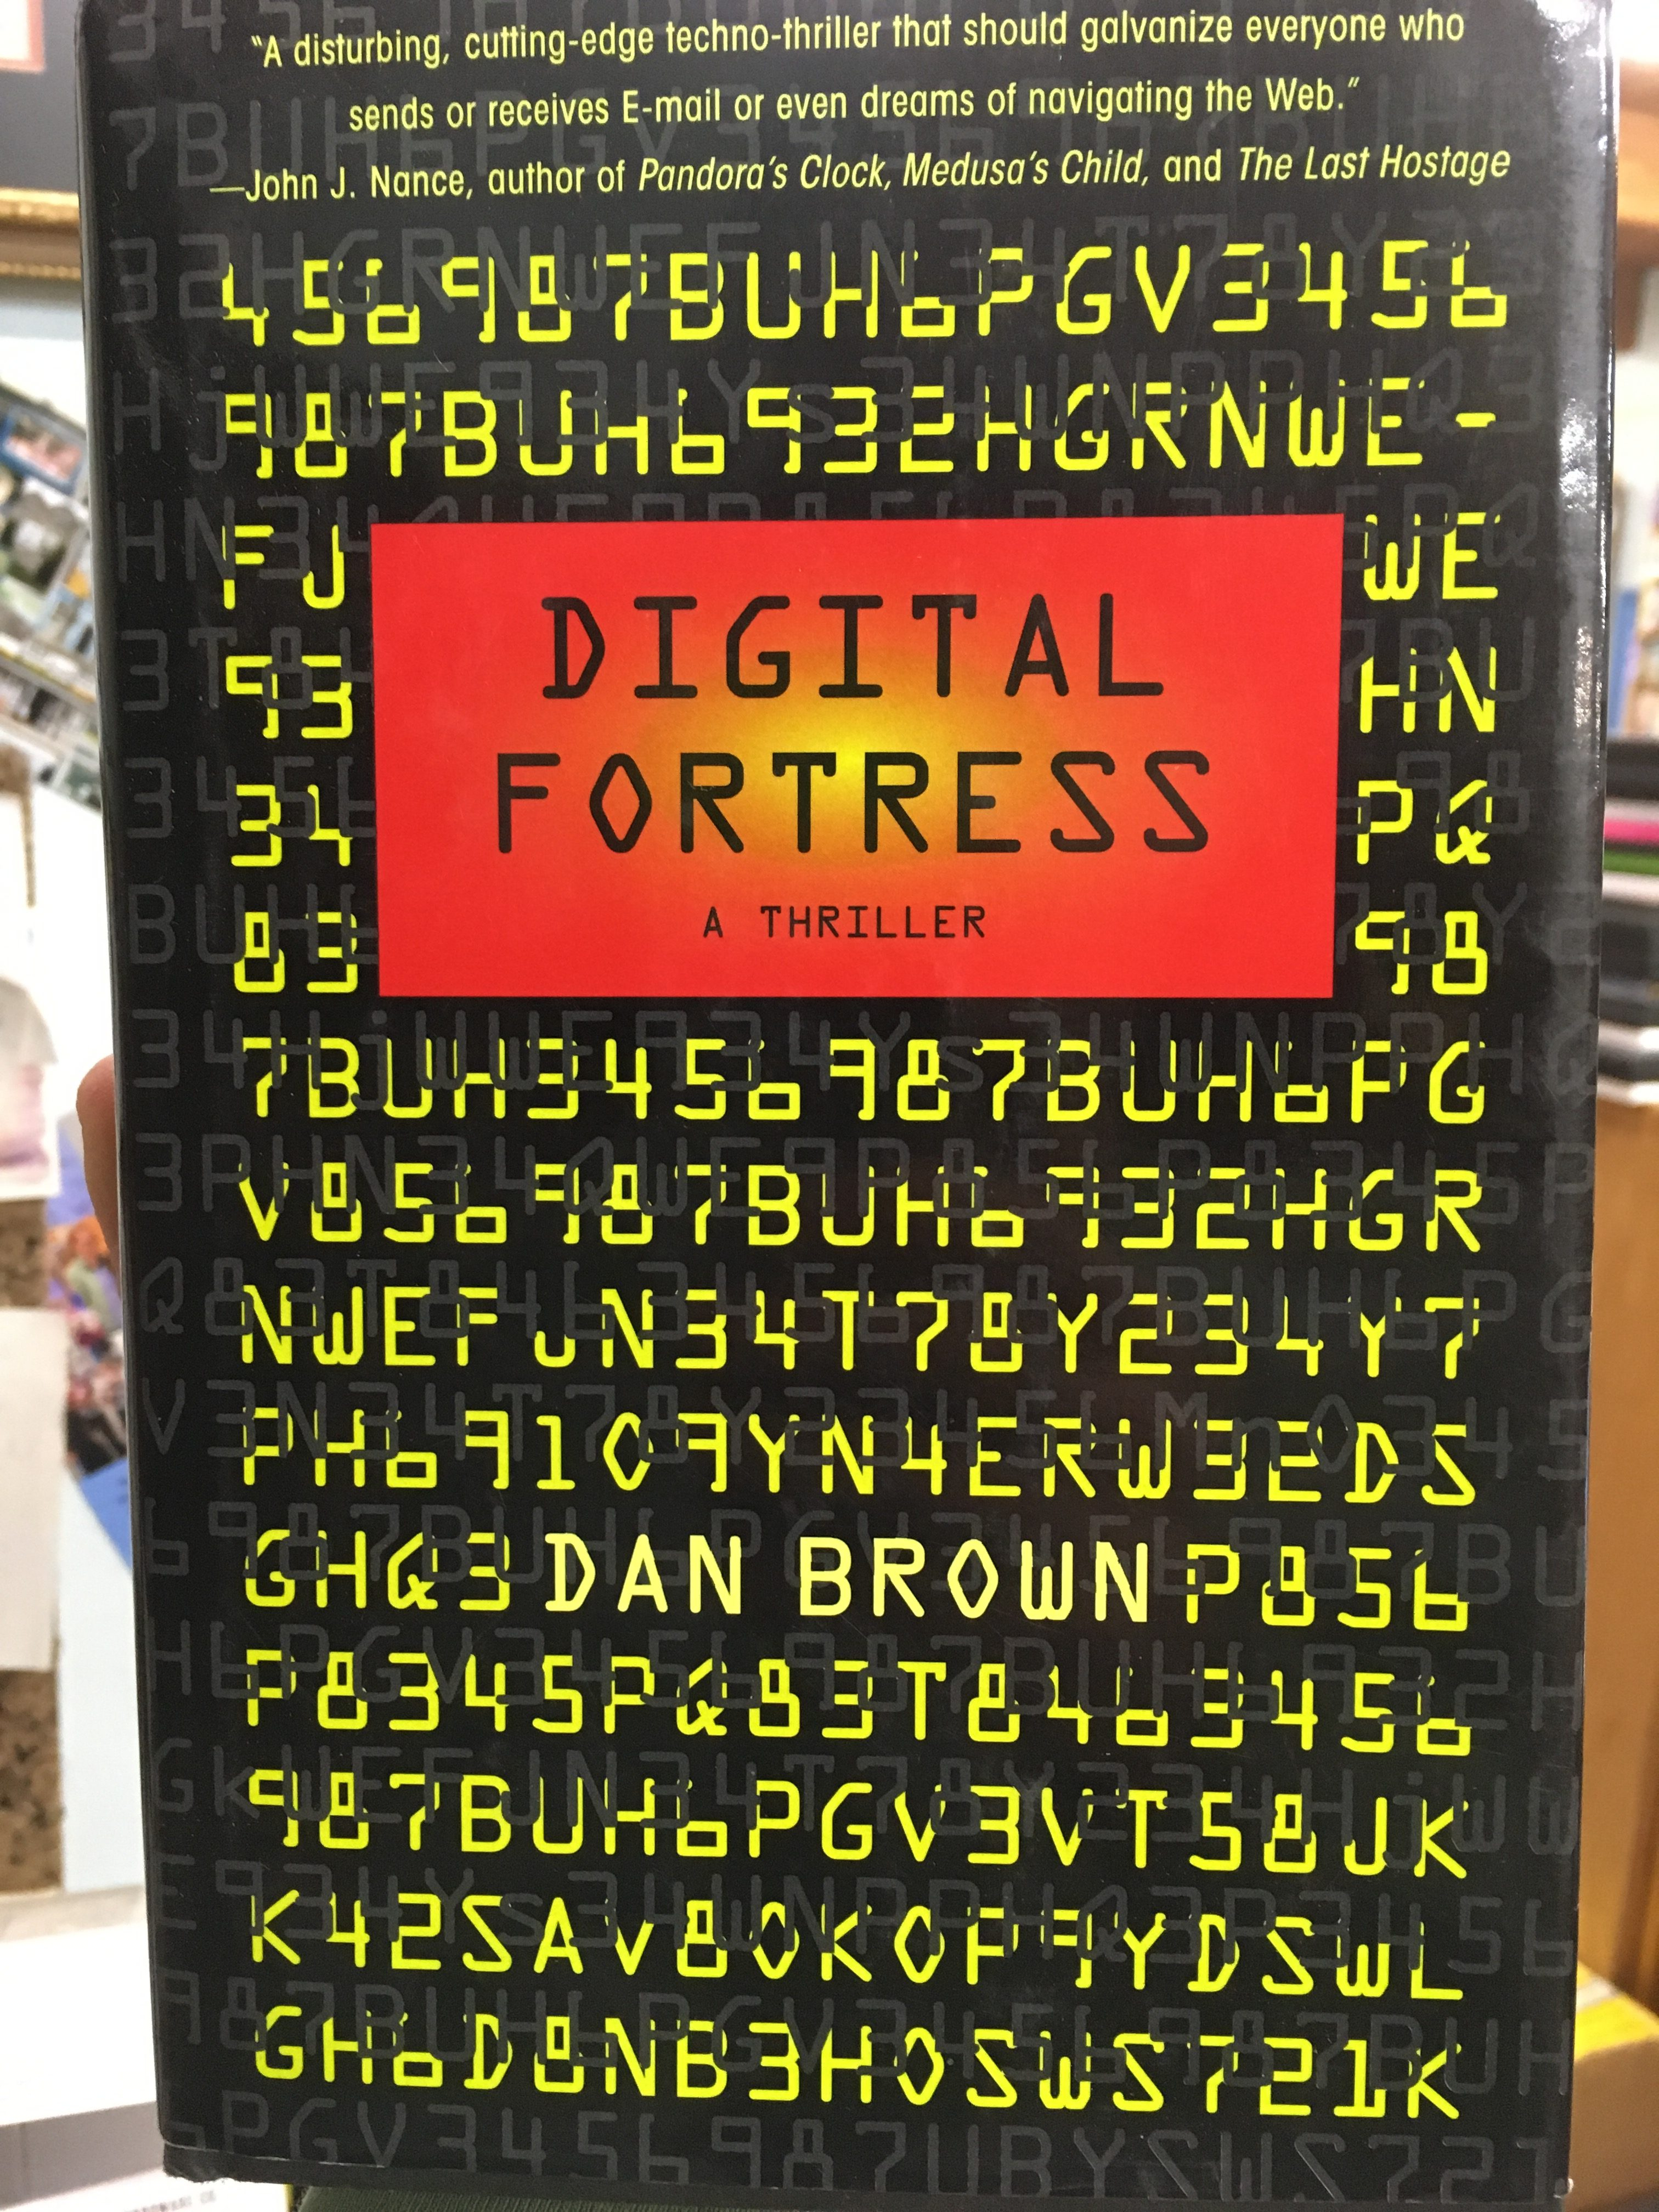 Browsers bookstore newsletter for october 2016 browsers bookstore although the da vinci code craze has ended theres no denying the influence of that book browns earlier work digital fortress used to be considered fandeluxe Image collections